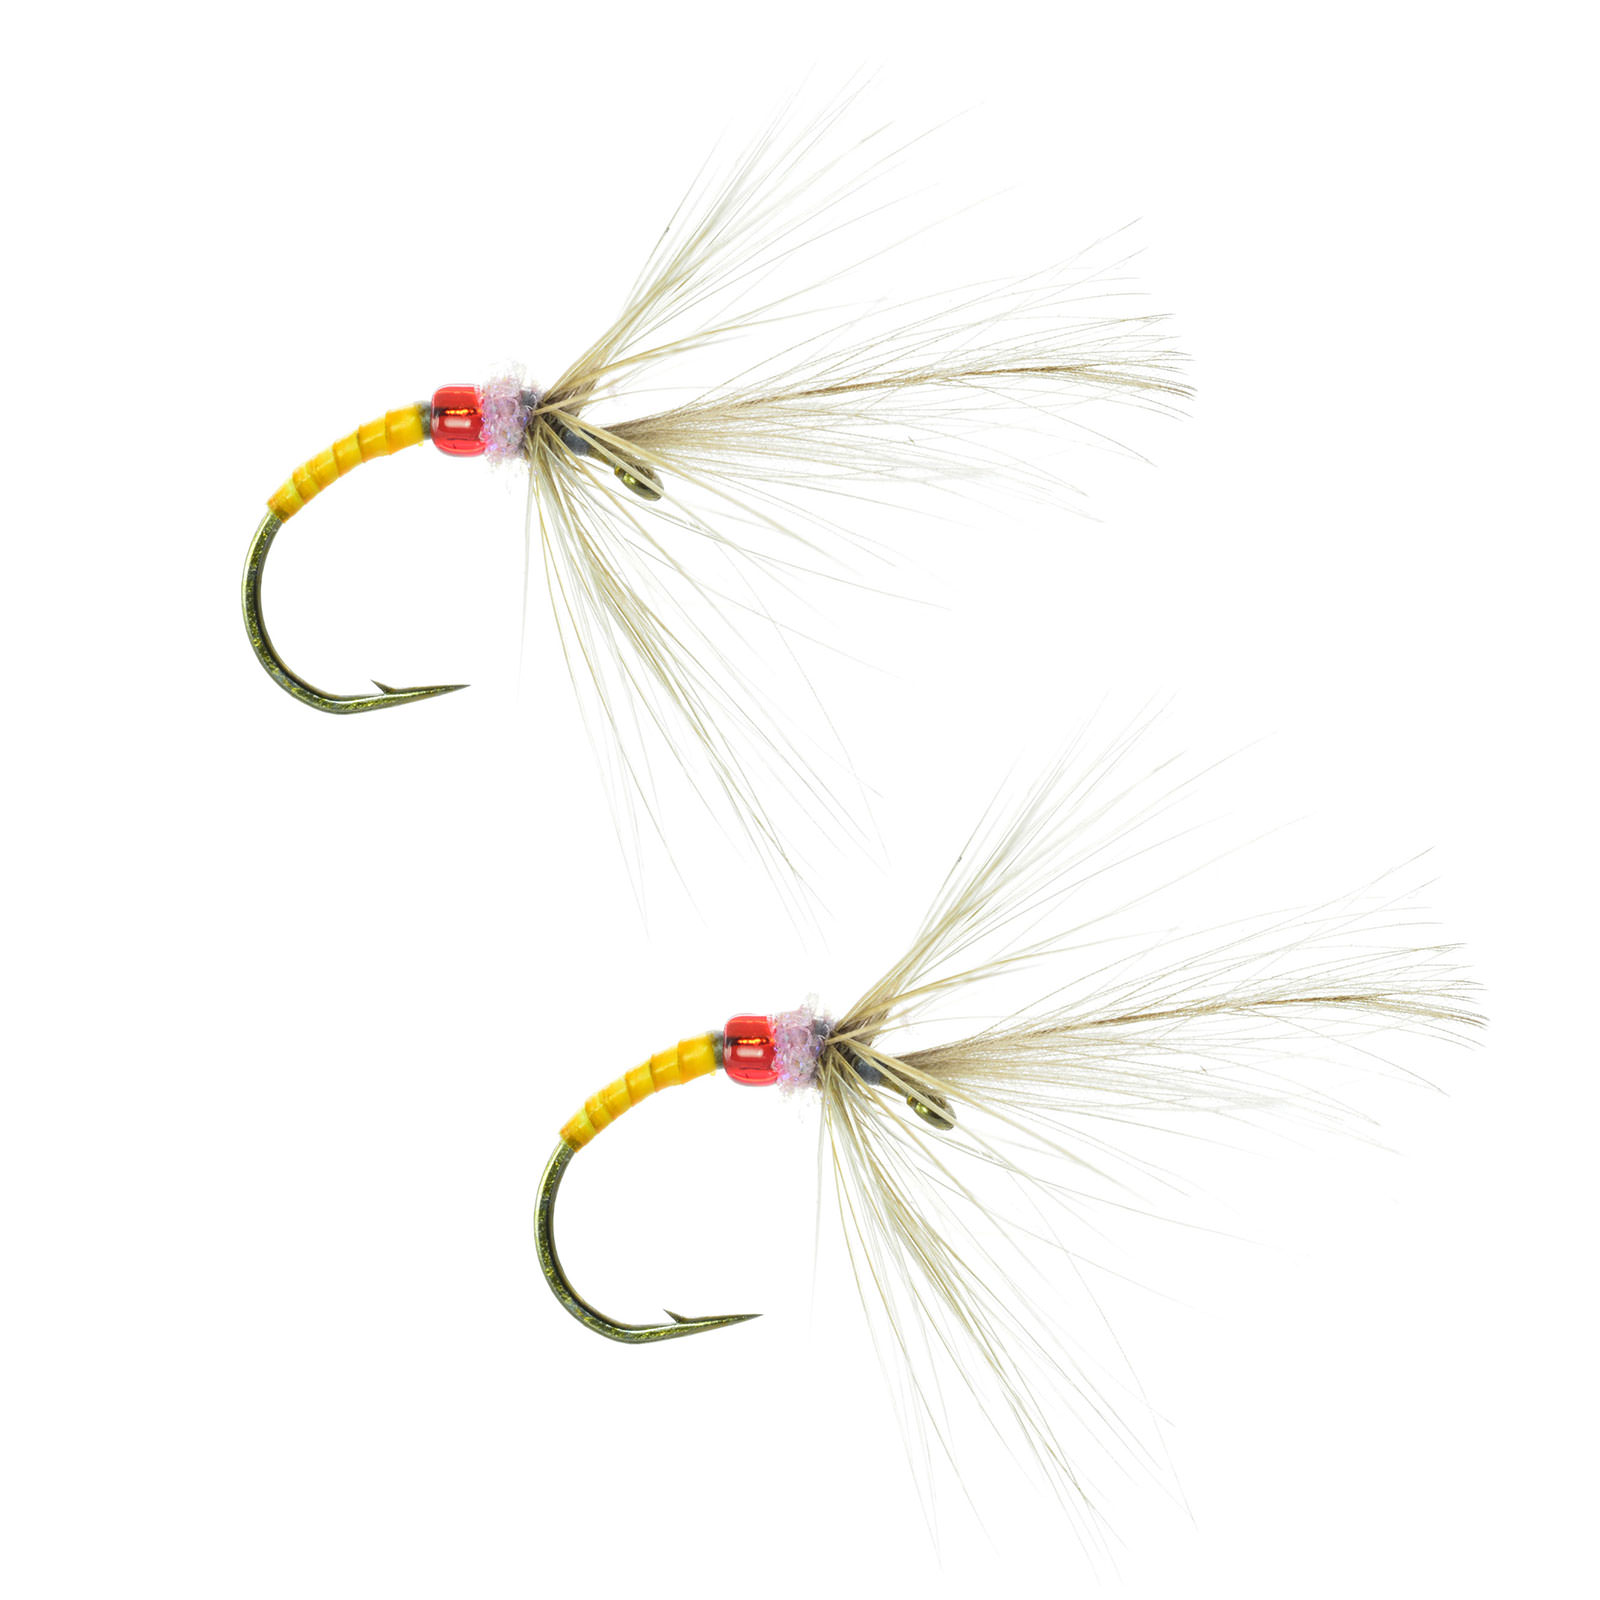 Umpqua tenkara glass emerger simple fly fishing pattern ebay for Simple fly fishing